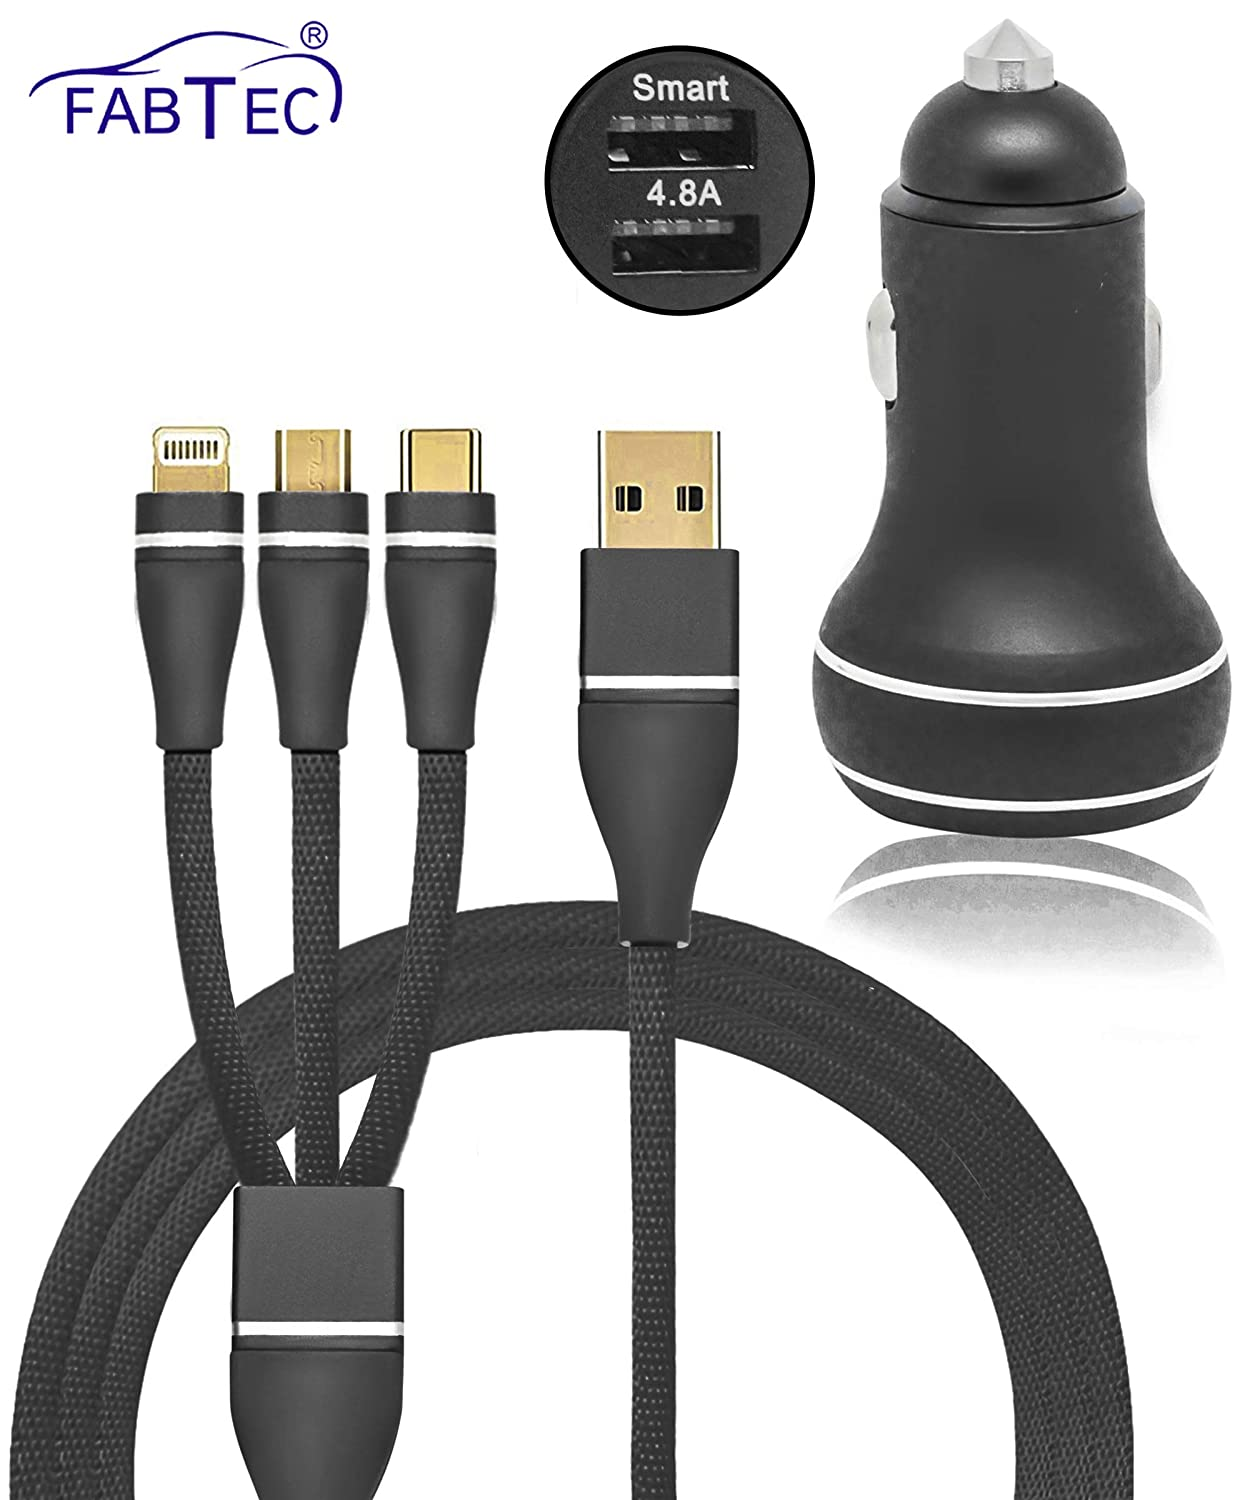 Carzex 4.8A Dual Port Smart & Rapid Charging Car Mobile/iPad/Tablet Charger with 3 in 1 USB Nylon Braided USB Charging Cable for Samsung, iPhone & Type C Android Phones - Carzex